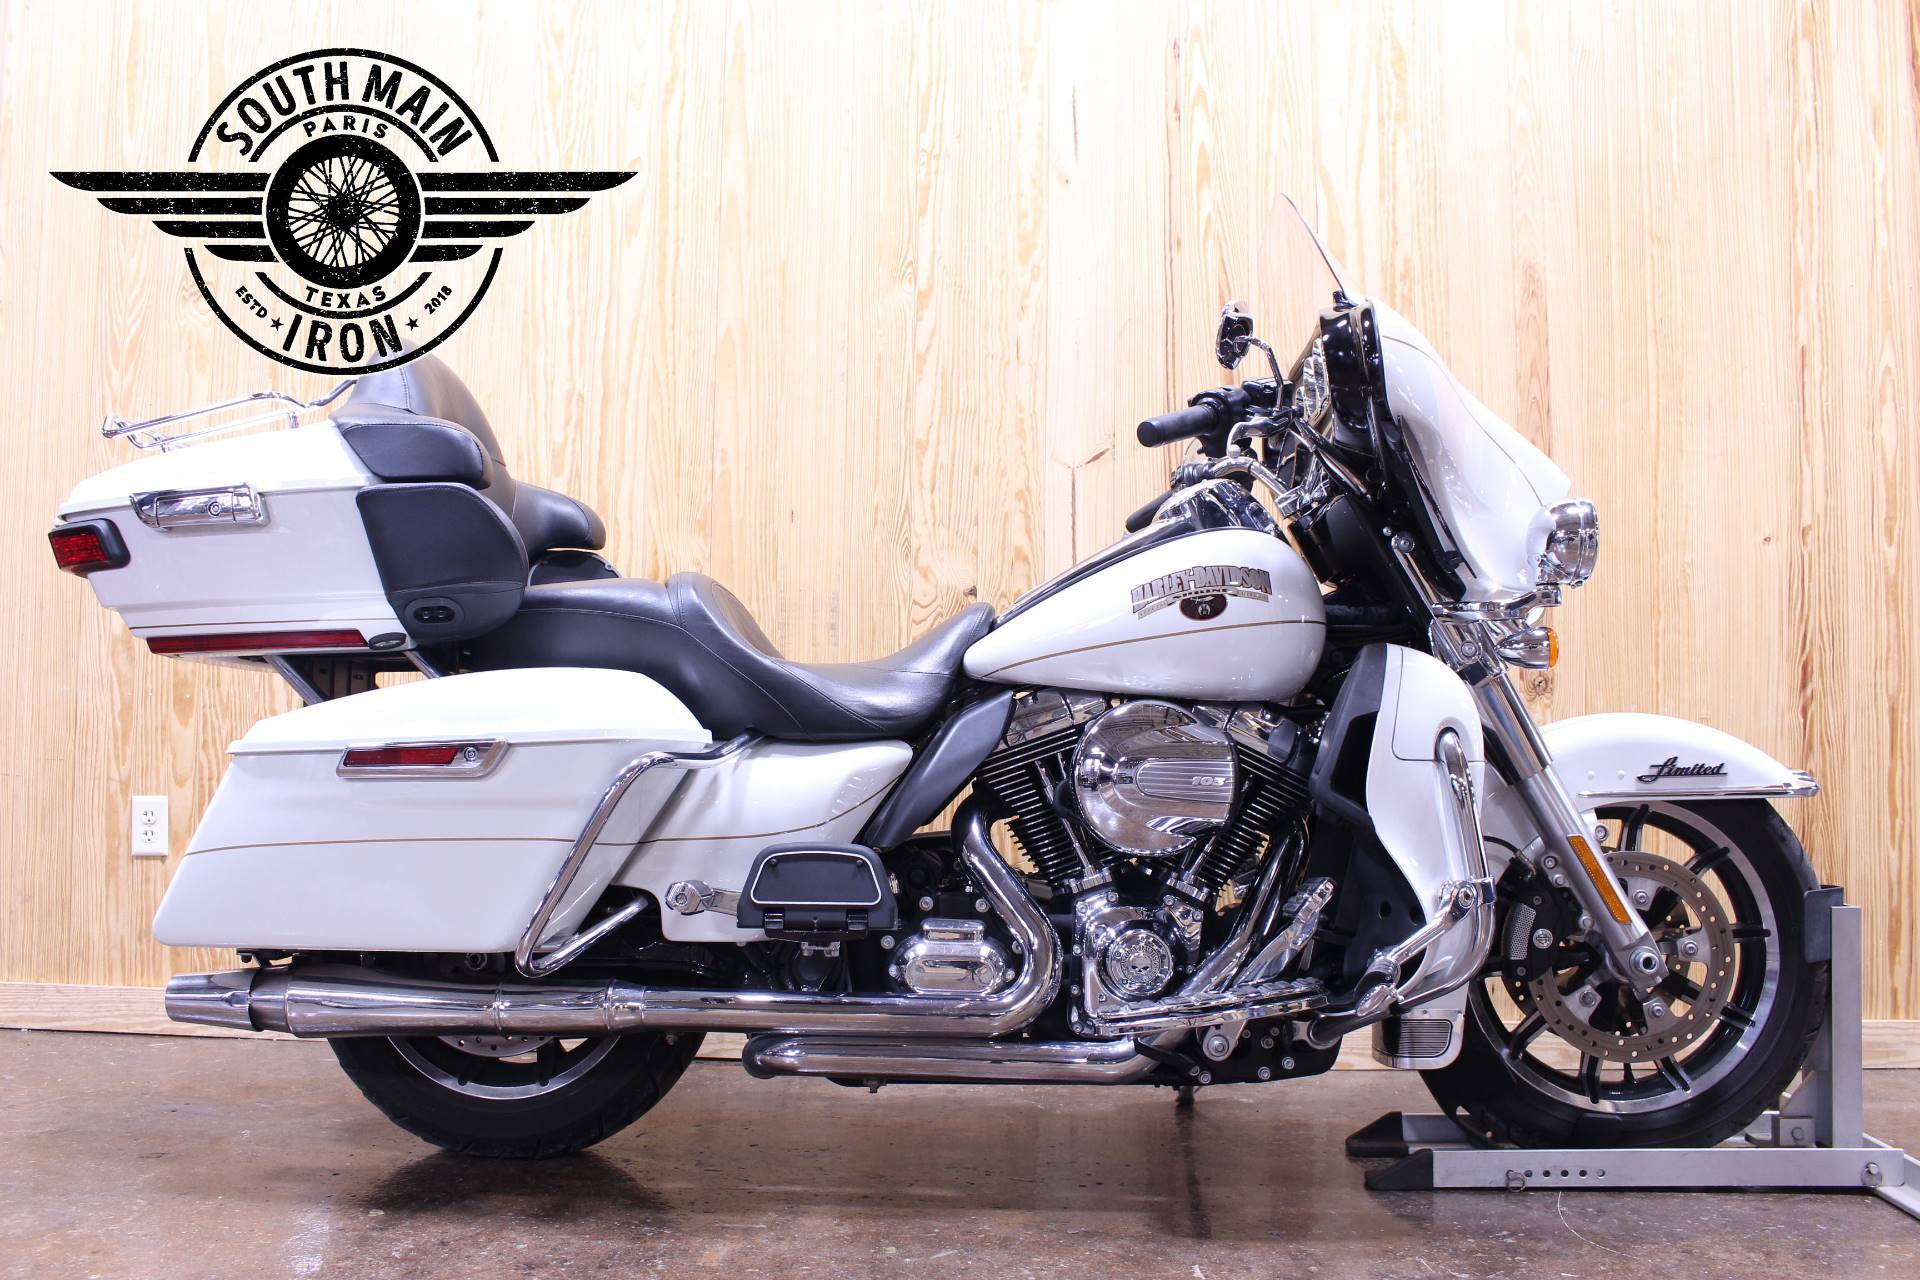 2014 Harley-Davidson Ultra Limited in Paris, Texas - Photo 1